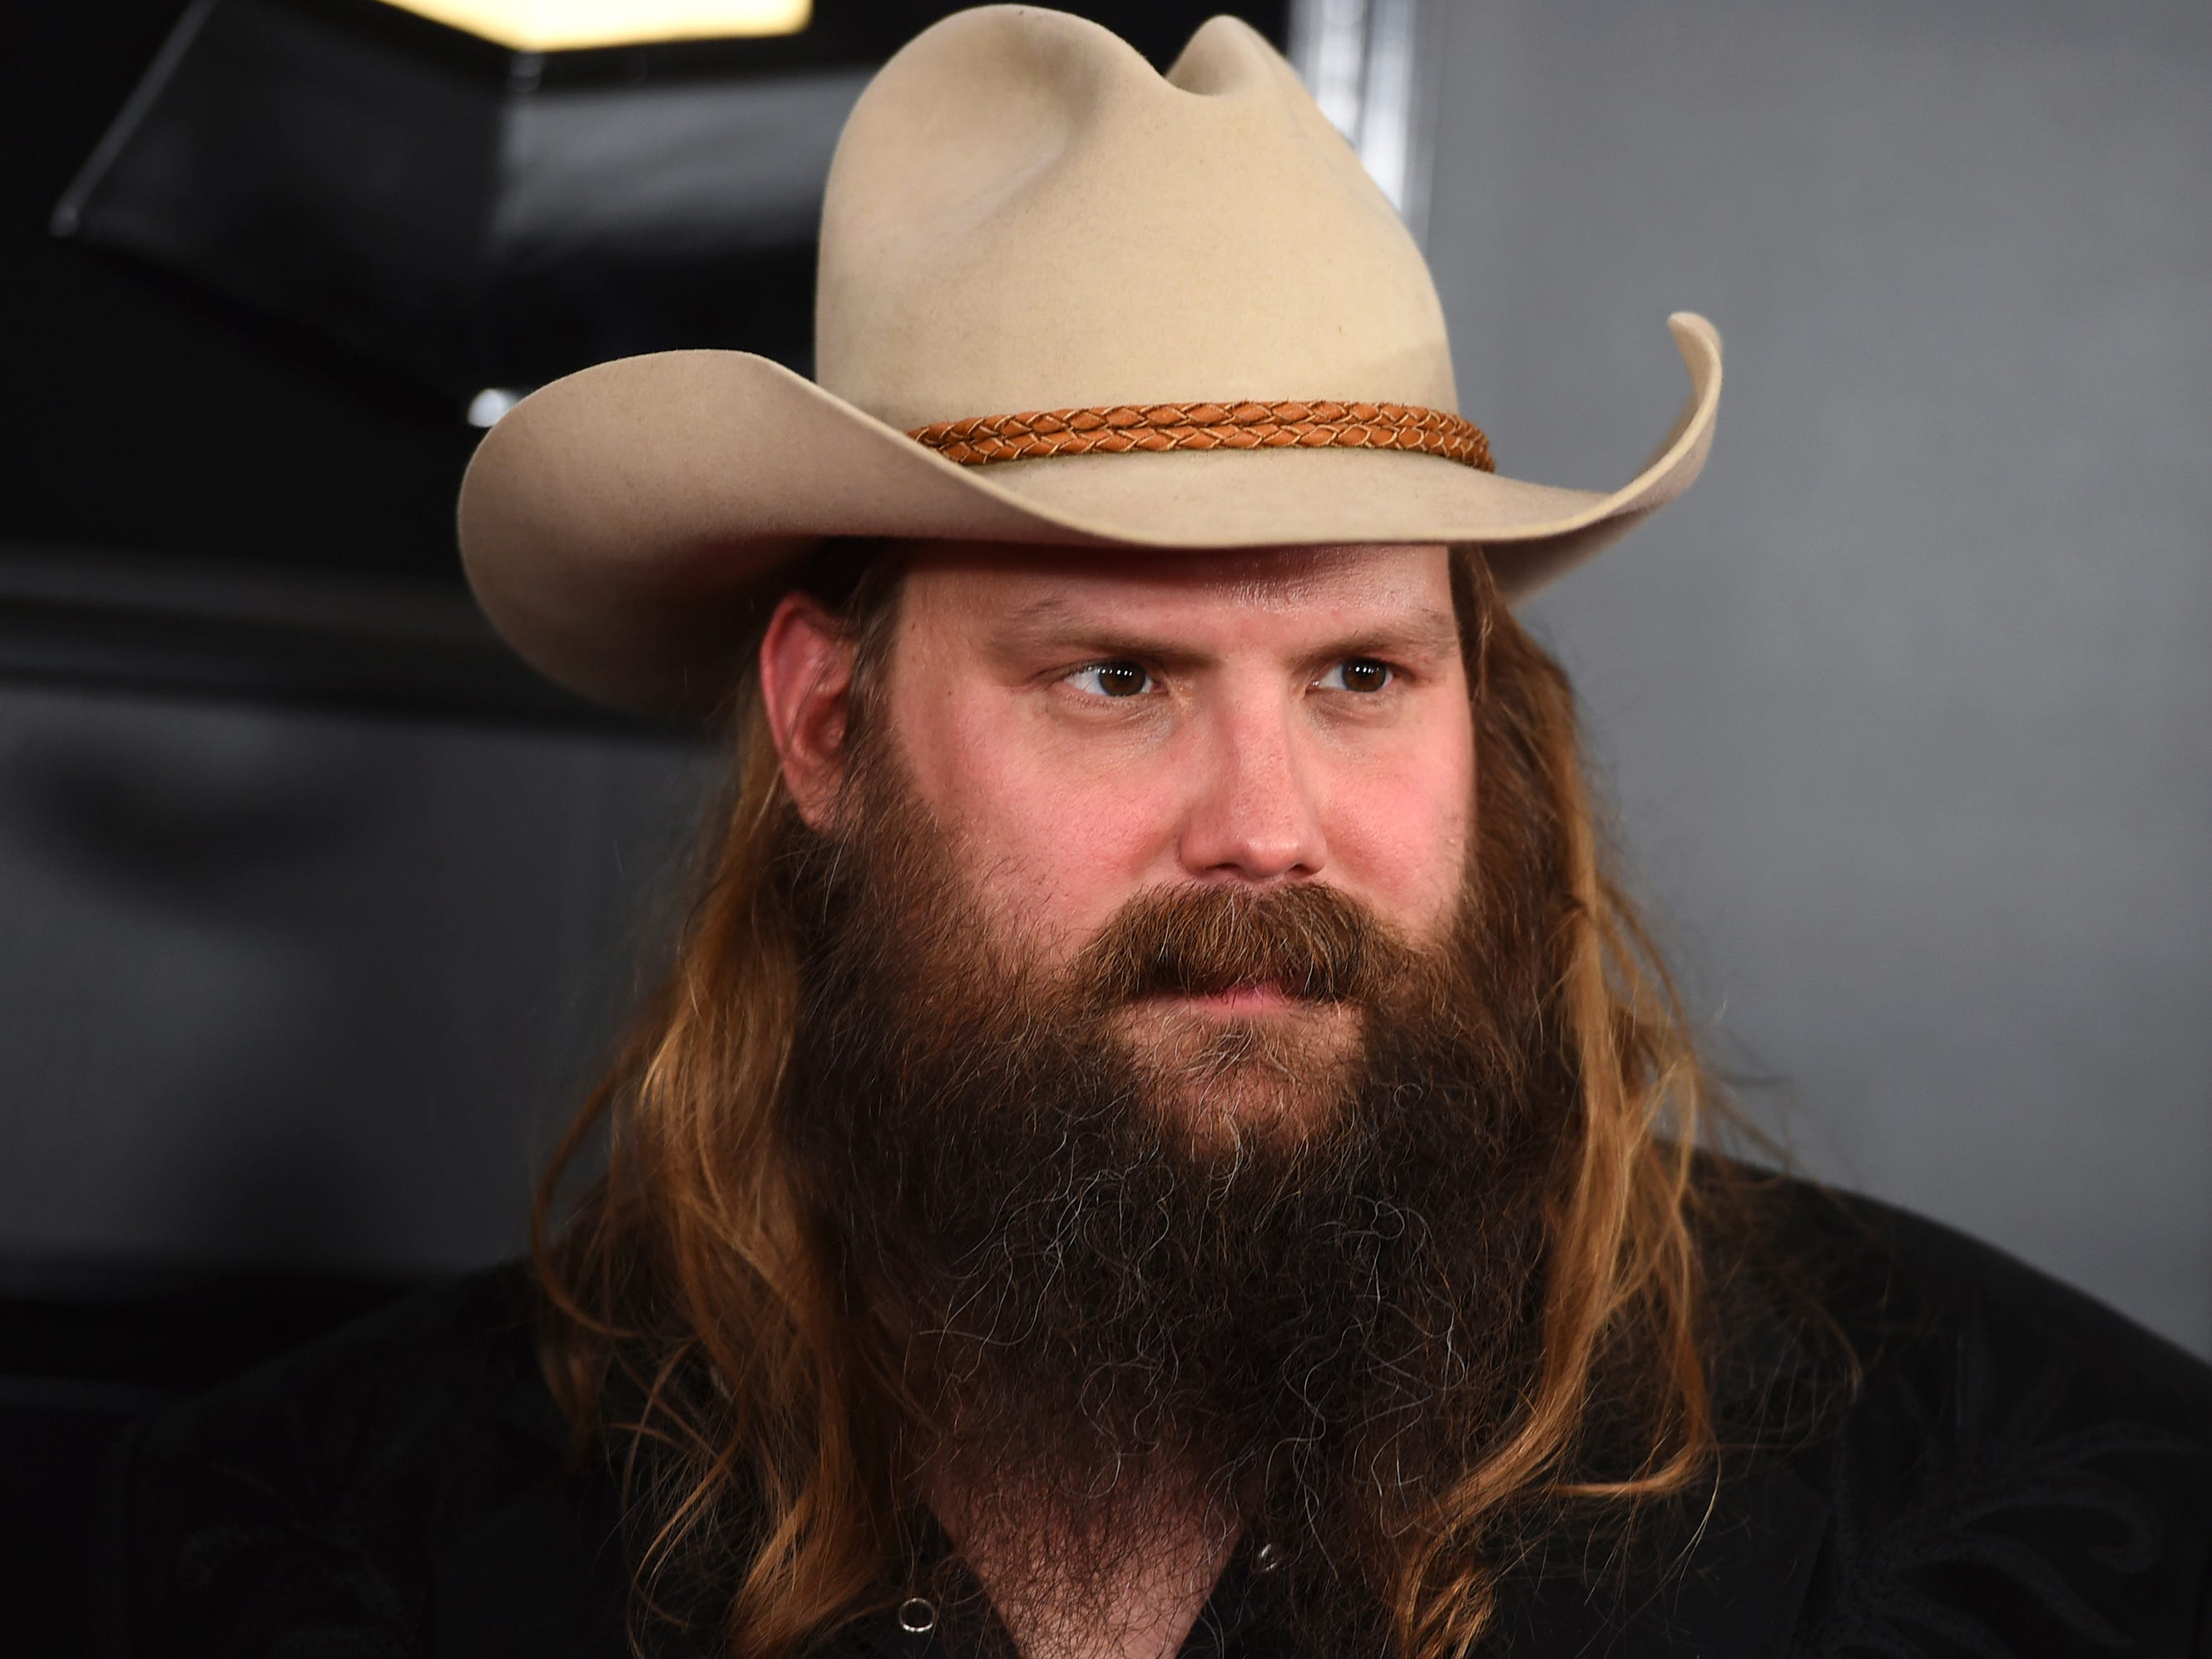 Chris Stapleton arrives at the 61st annual Grammy Awards at the Staples Center on Sunday, Feb. 10, 2019, in Los Angeles.